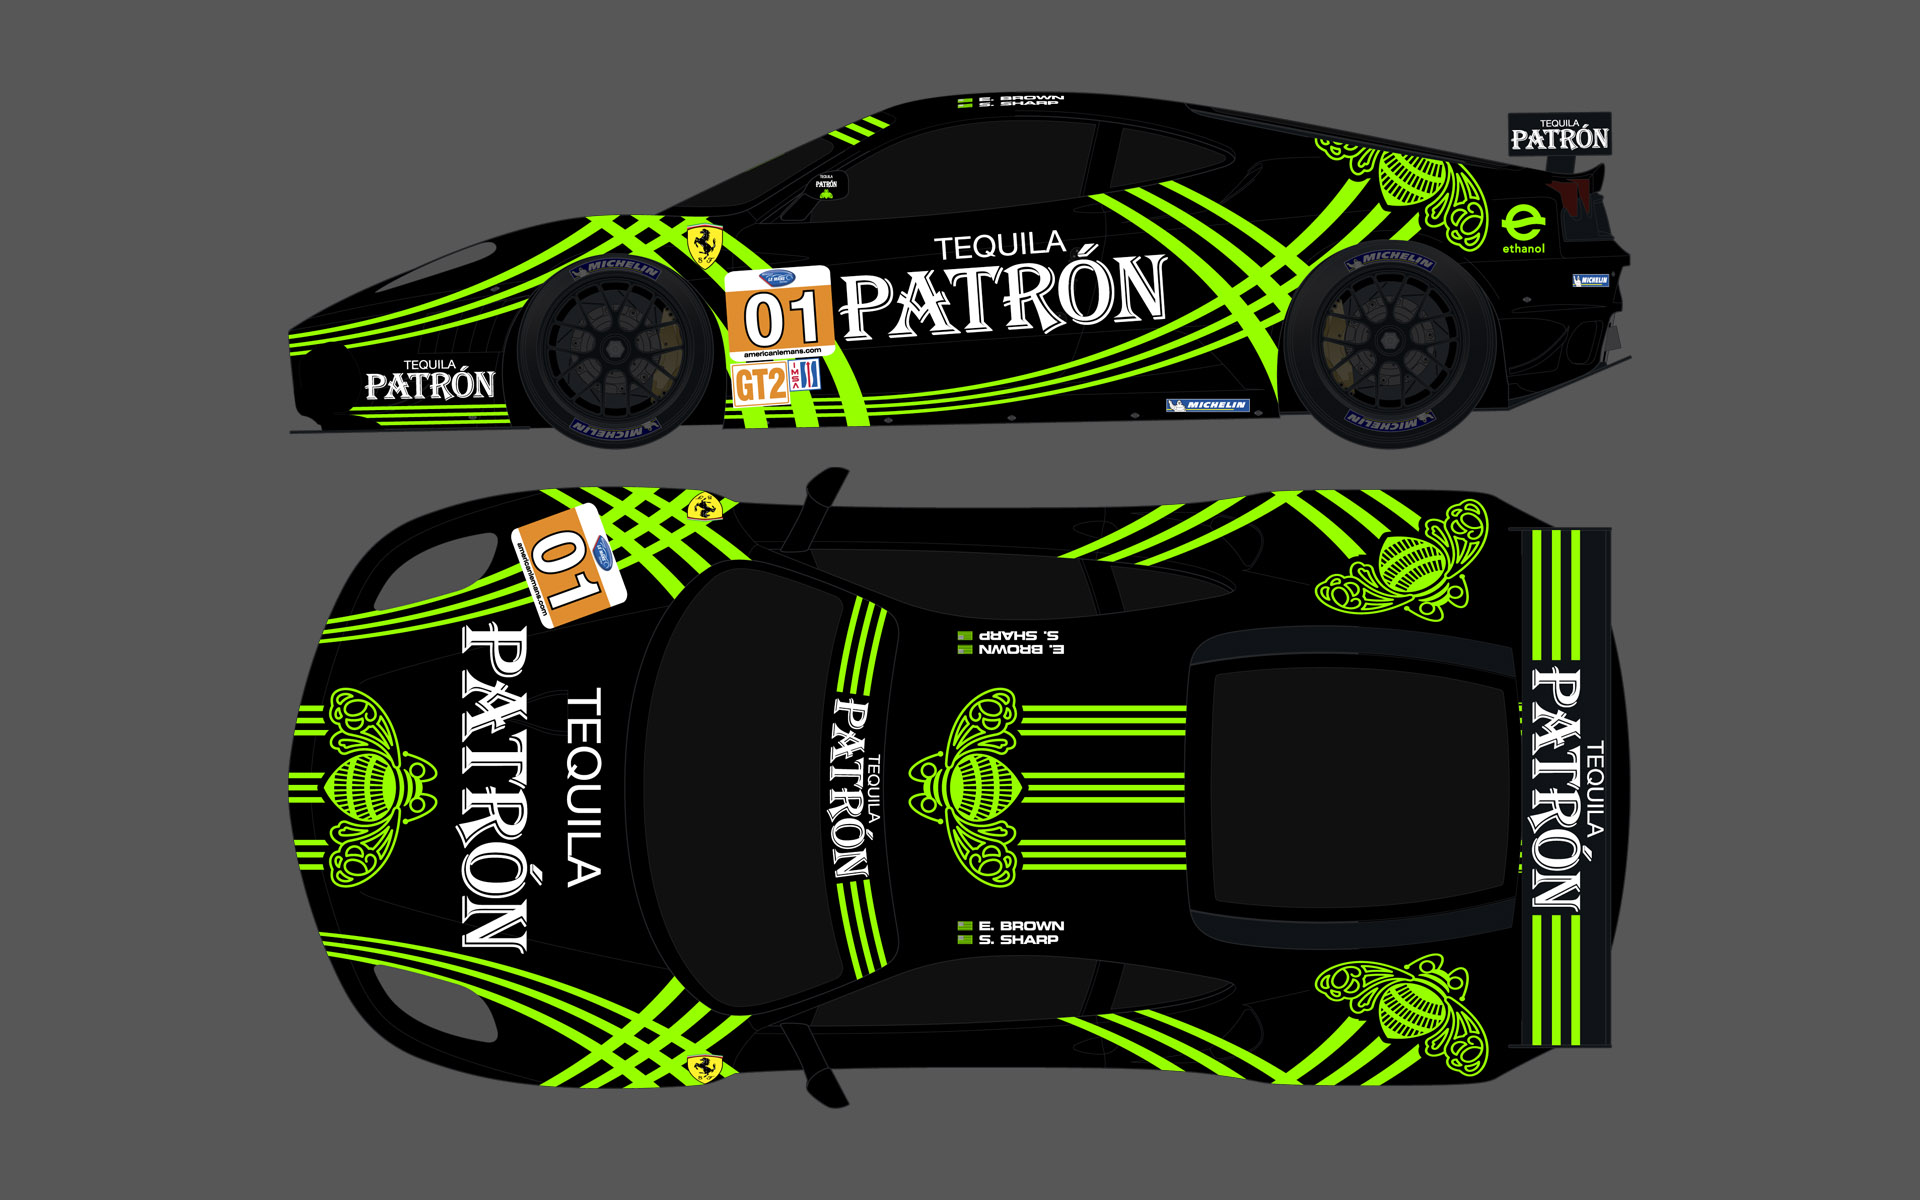 2010 Extreme Speed Motorsports Pu00e1tron Ferrari 430 GT Livery Elevations